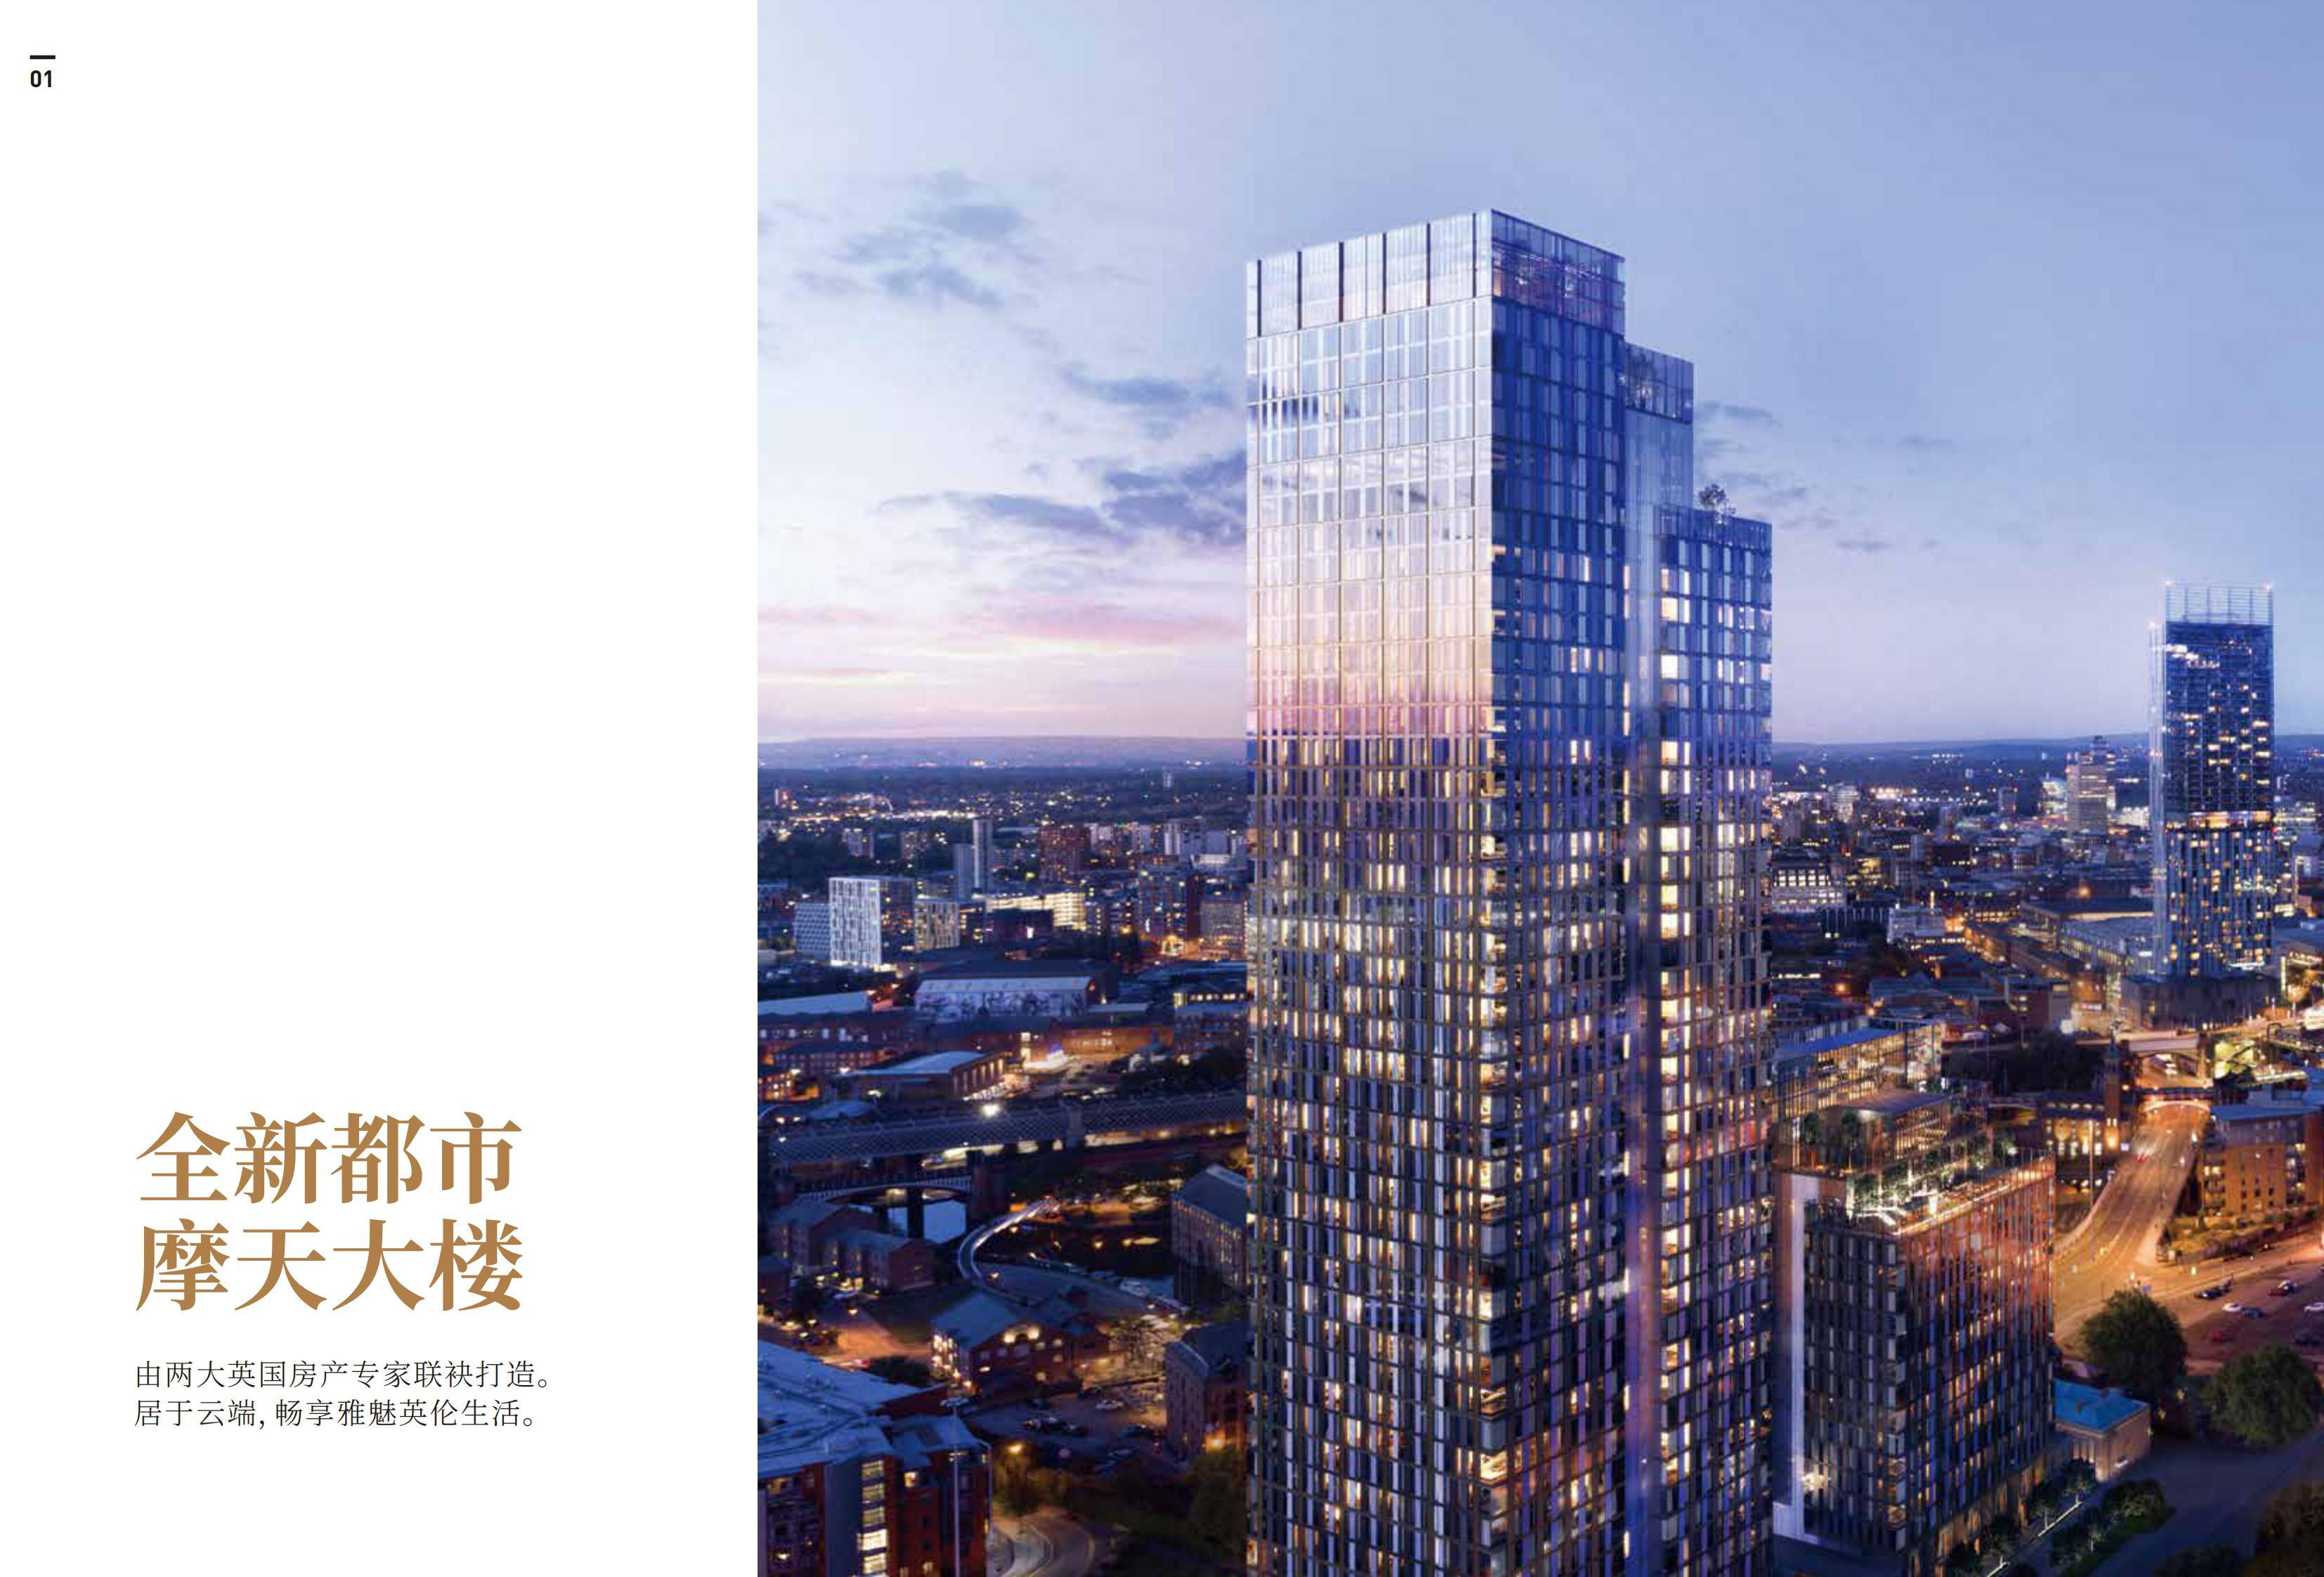 【英国】全新都市摩天大楼——ELIZABETH TOWER